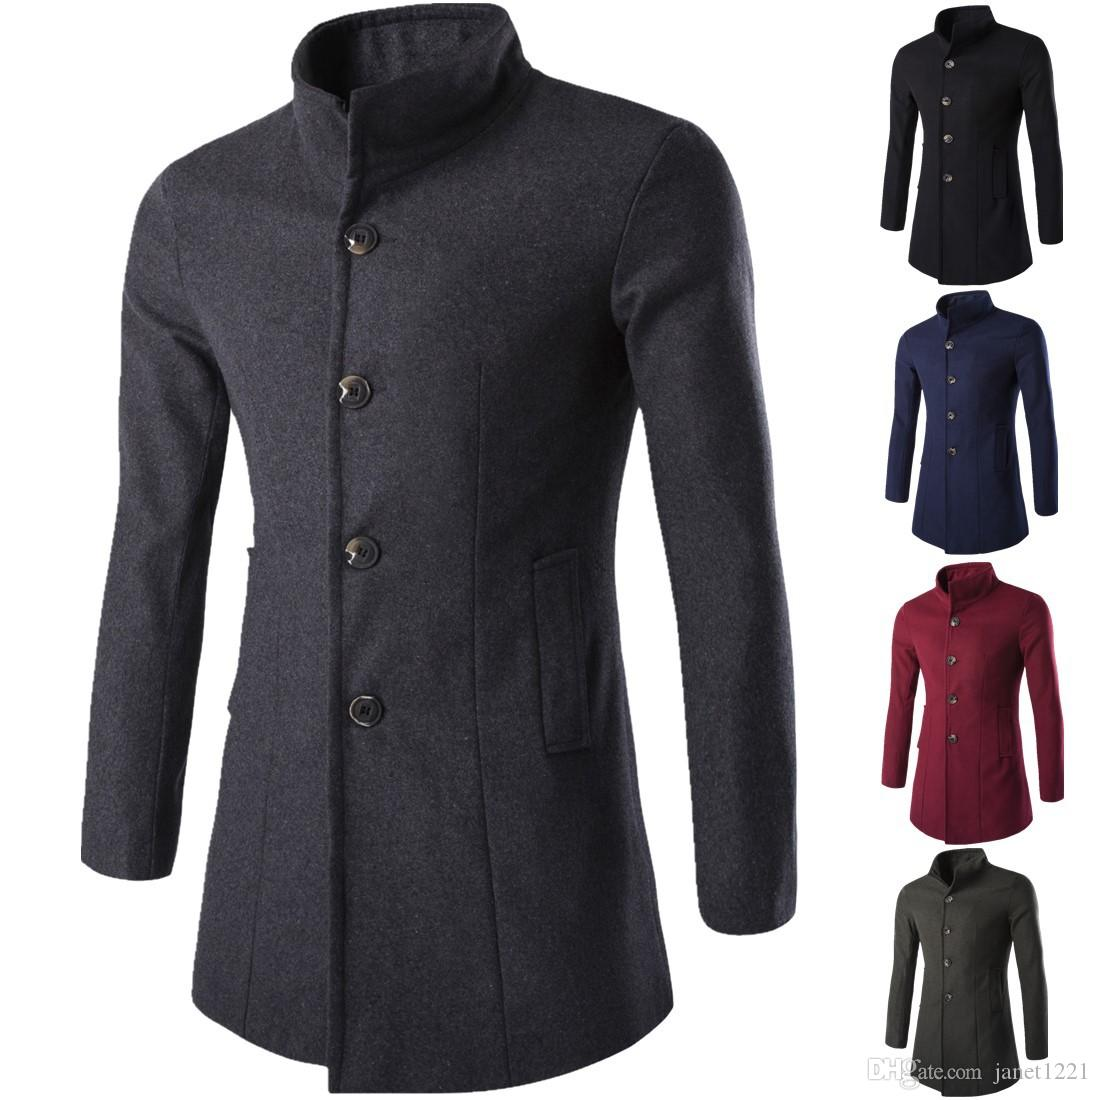 2b0857f81d8f Mens Trench Coat Overcoat Long Jacket Single Breasted Solid Slim Fit Men's  Wool Long Trench Coat Stand Collar Casual Trench For Men J161021